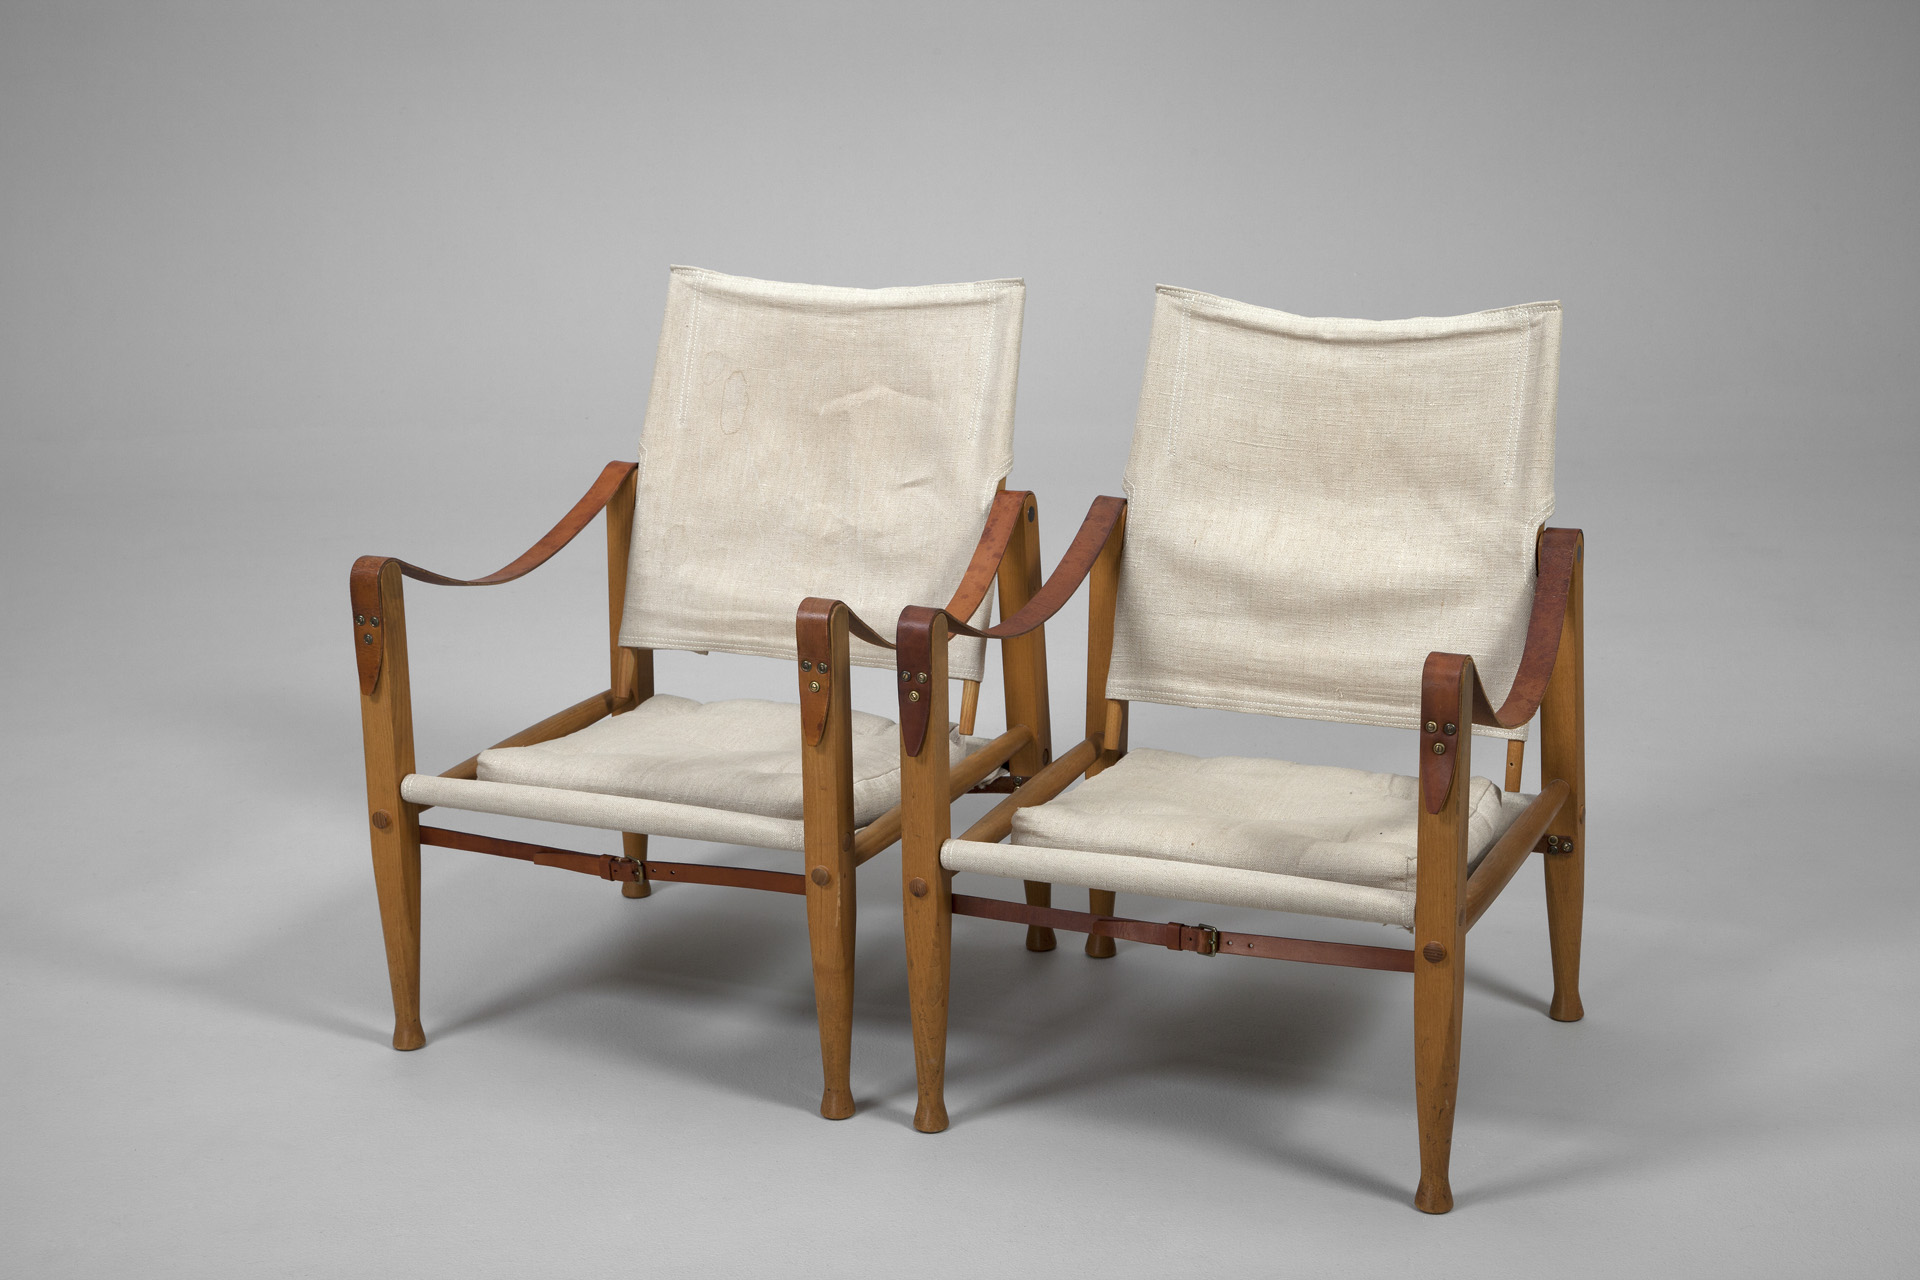 Jacksons Pair of Safari Chairs Kaare Klint